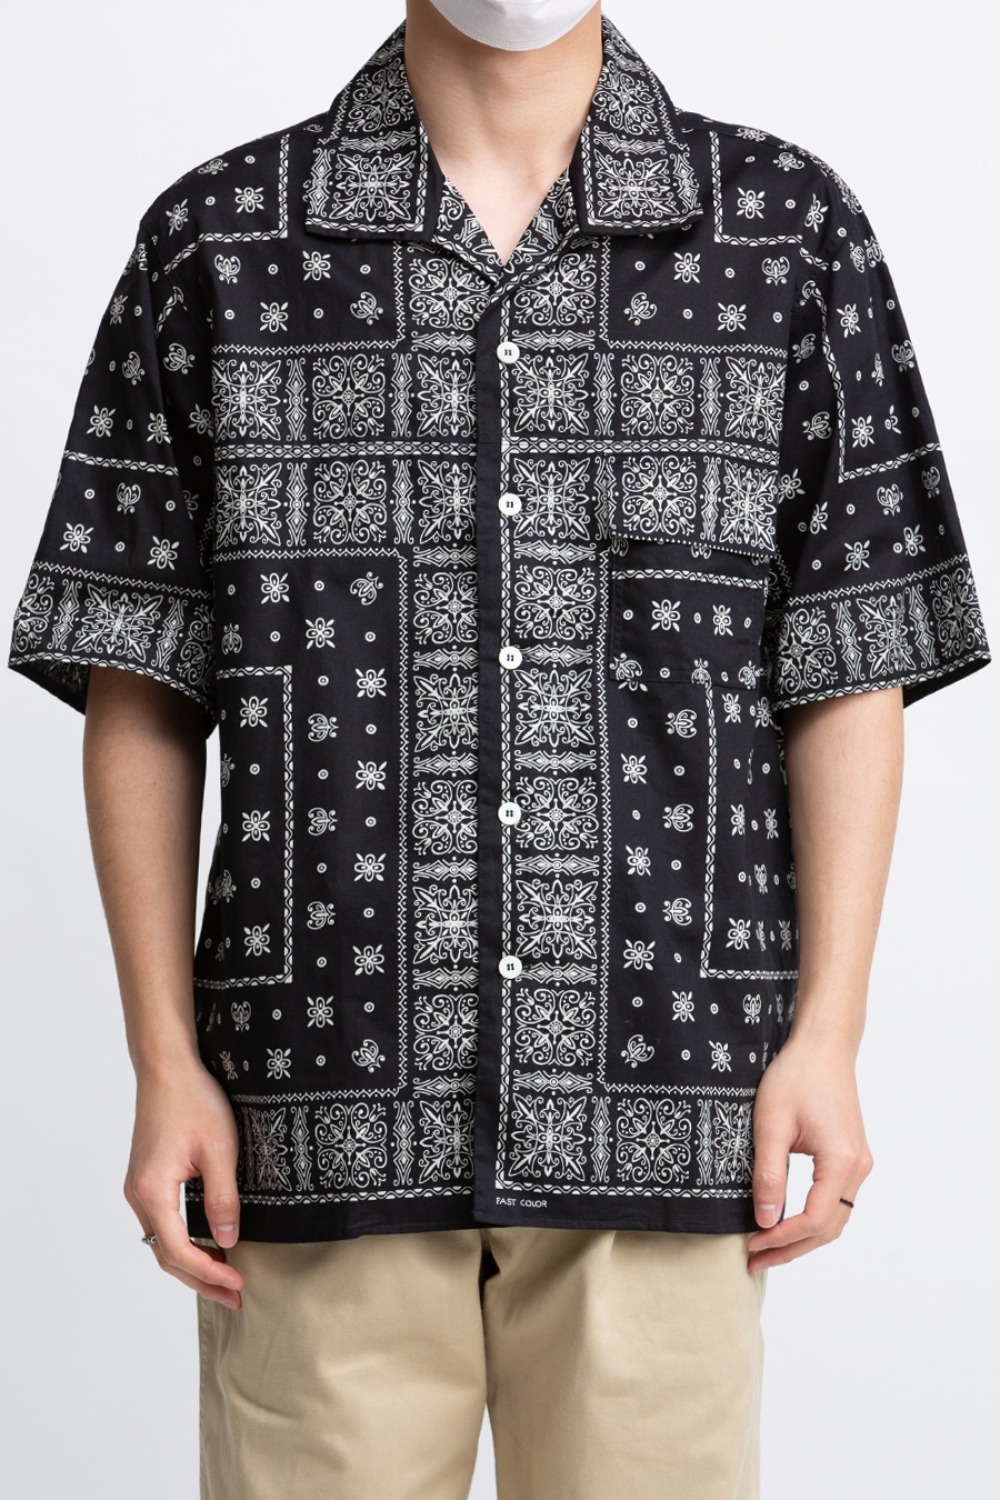 JM BANDANNA SHIRT S/S BLACK(MS20014)